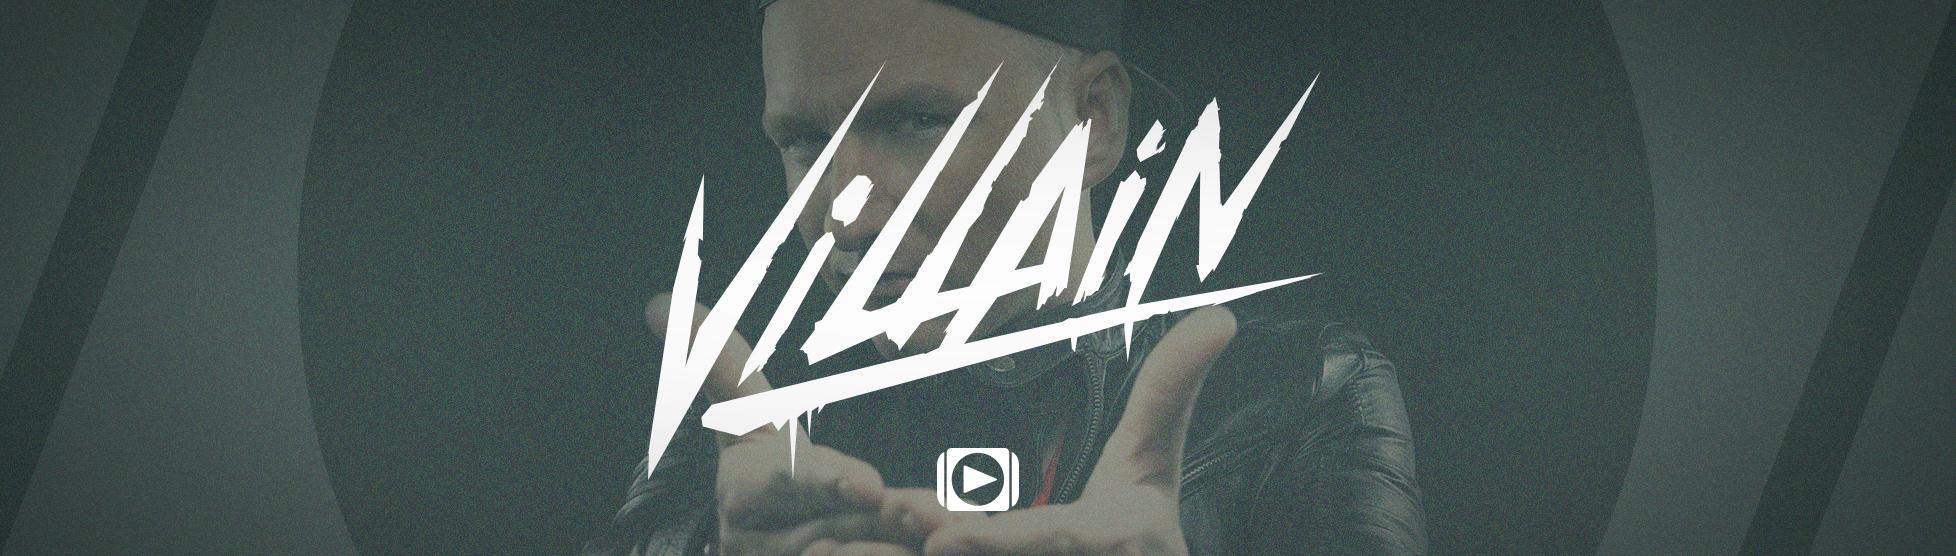 Villain Merchandise Artists Hardstyle Com Your Home Of Hardstyle